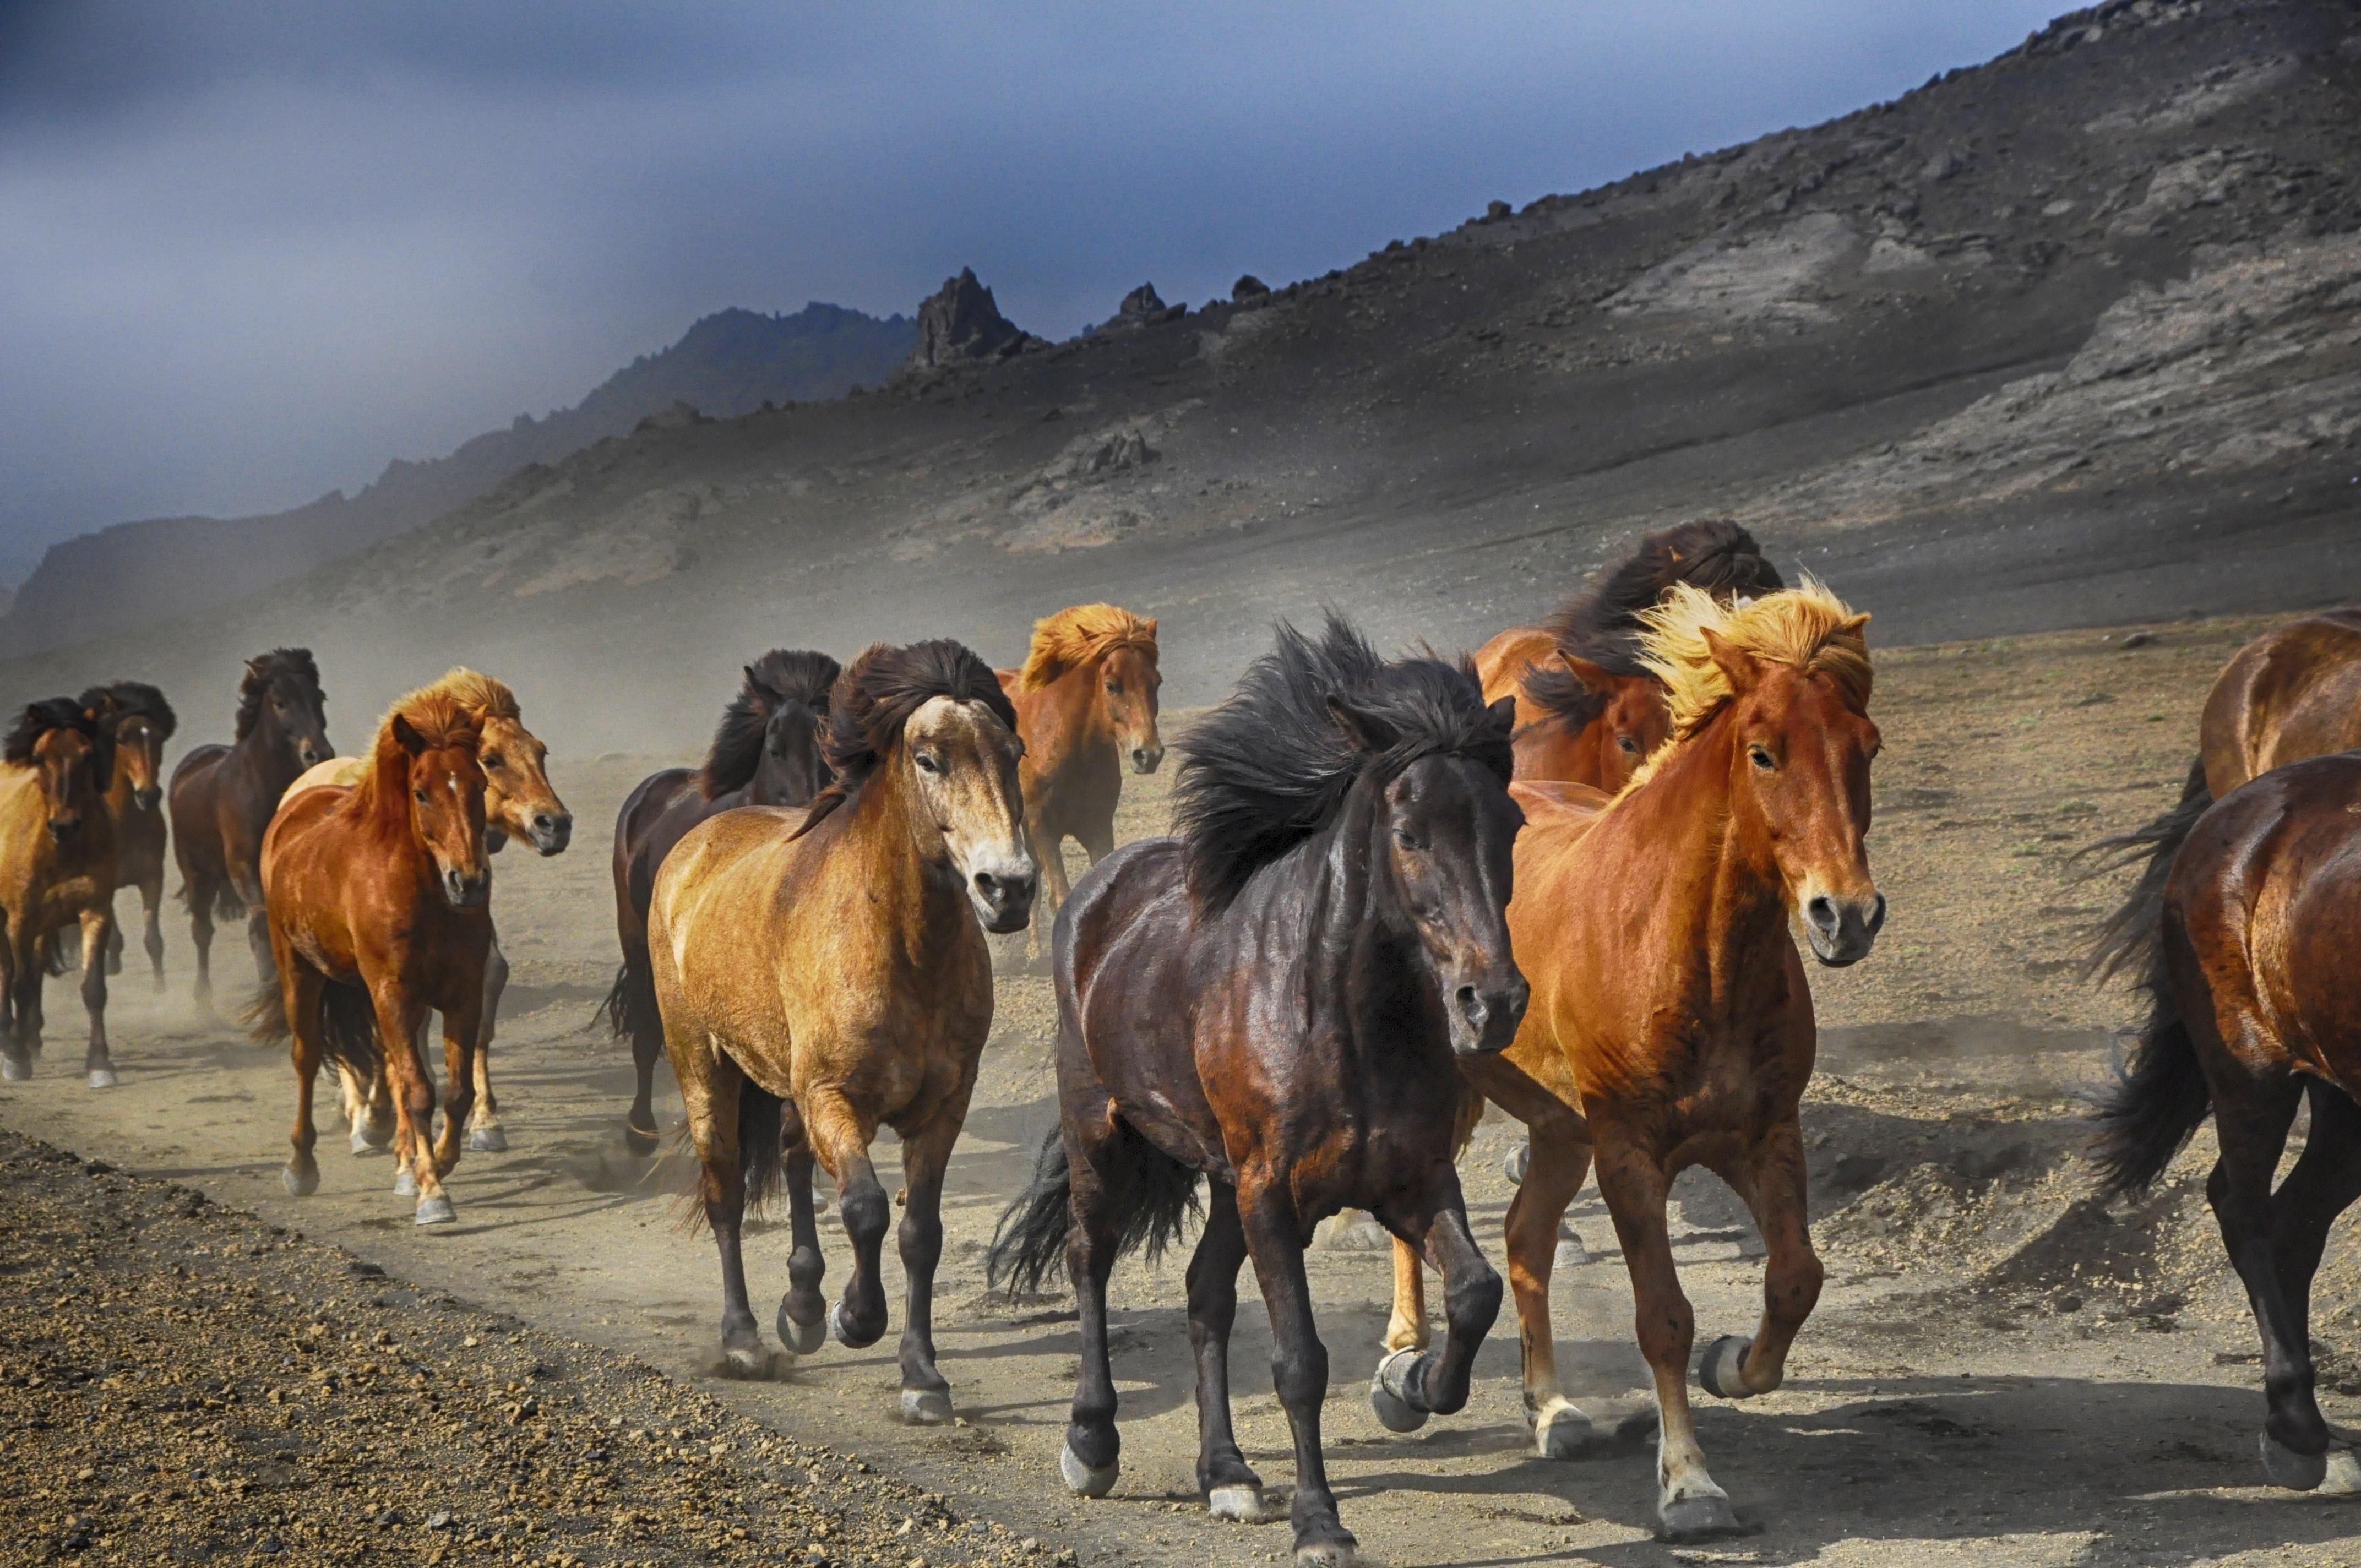 Horses Running on a Dirt Road wallpaper